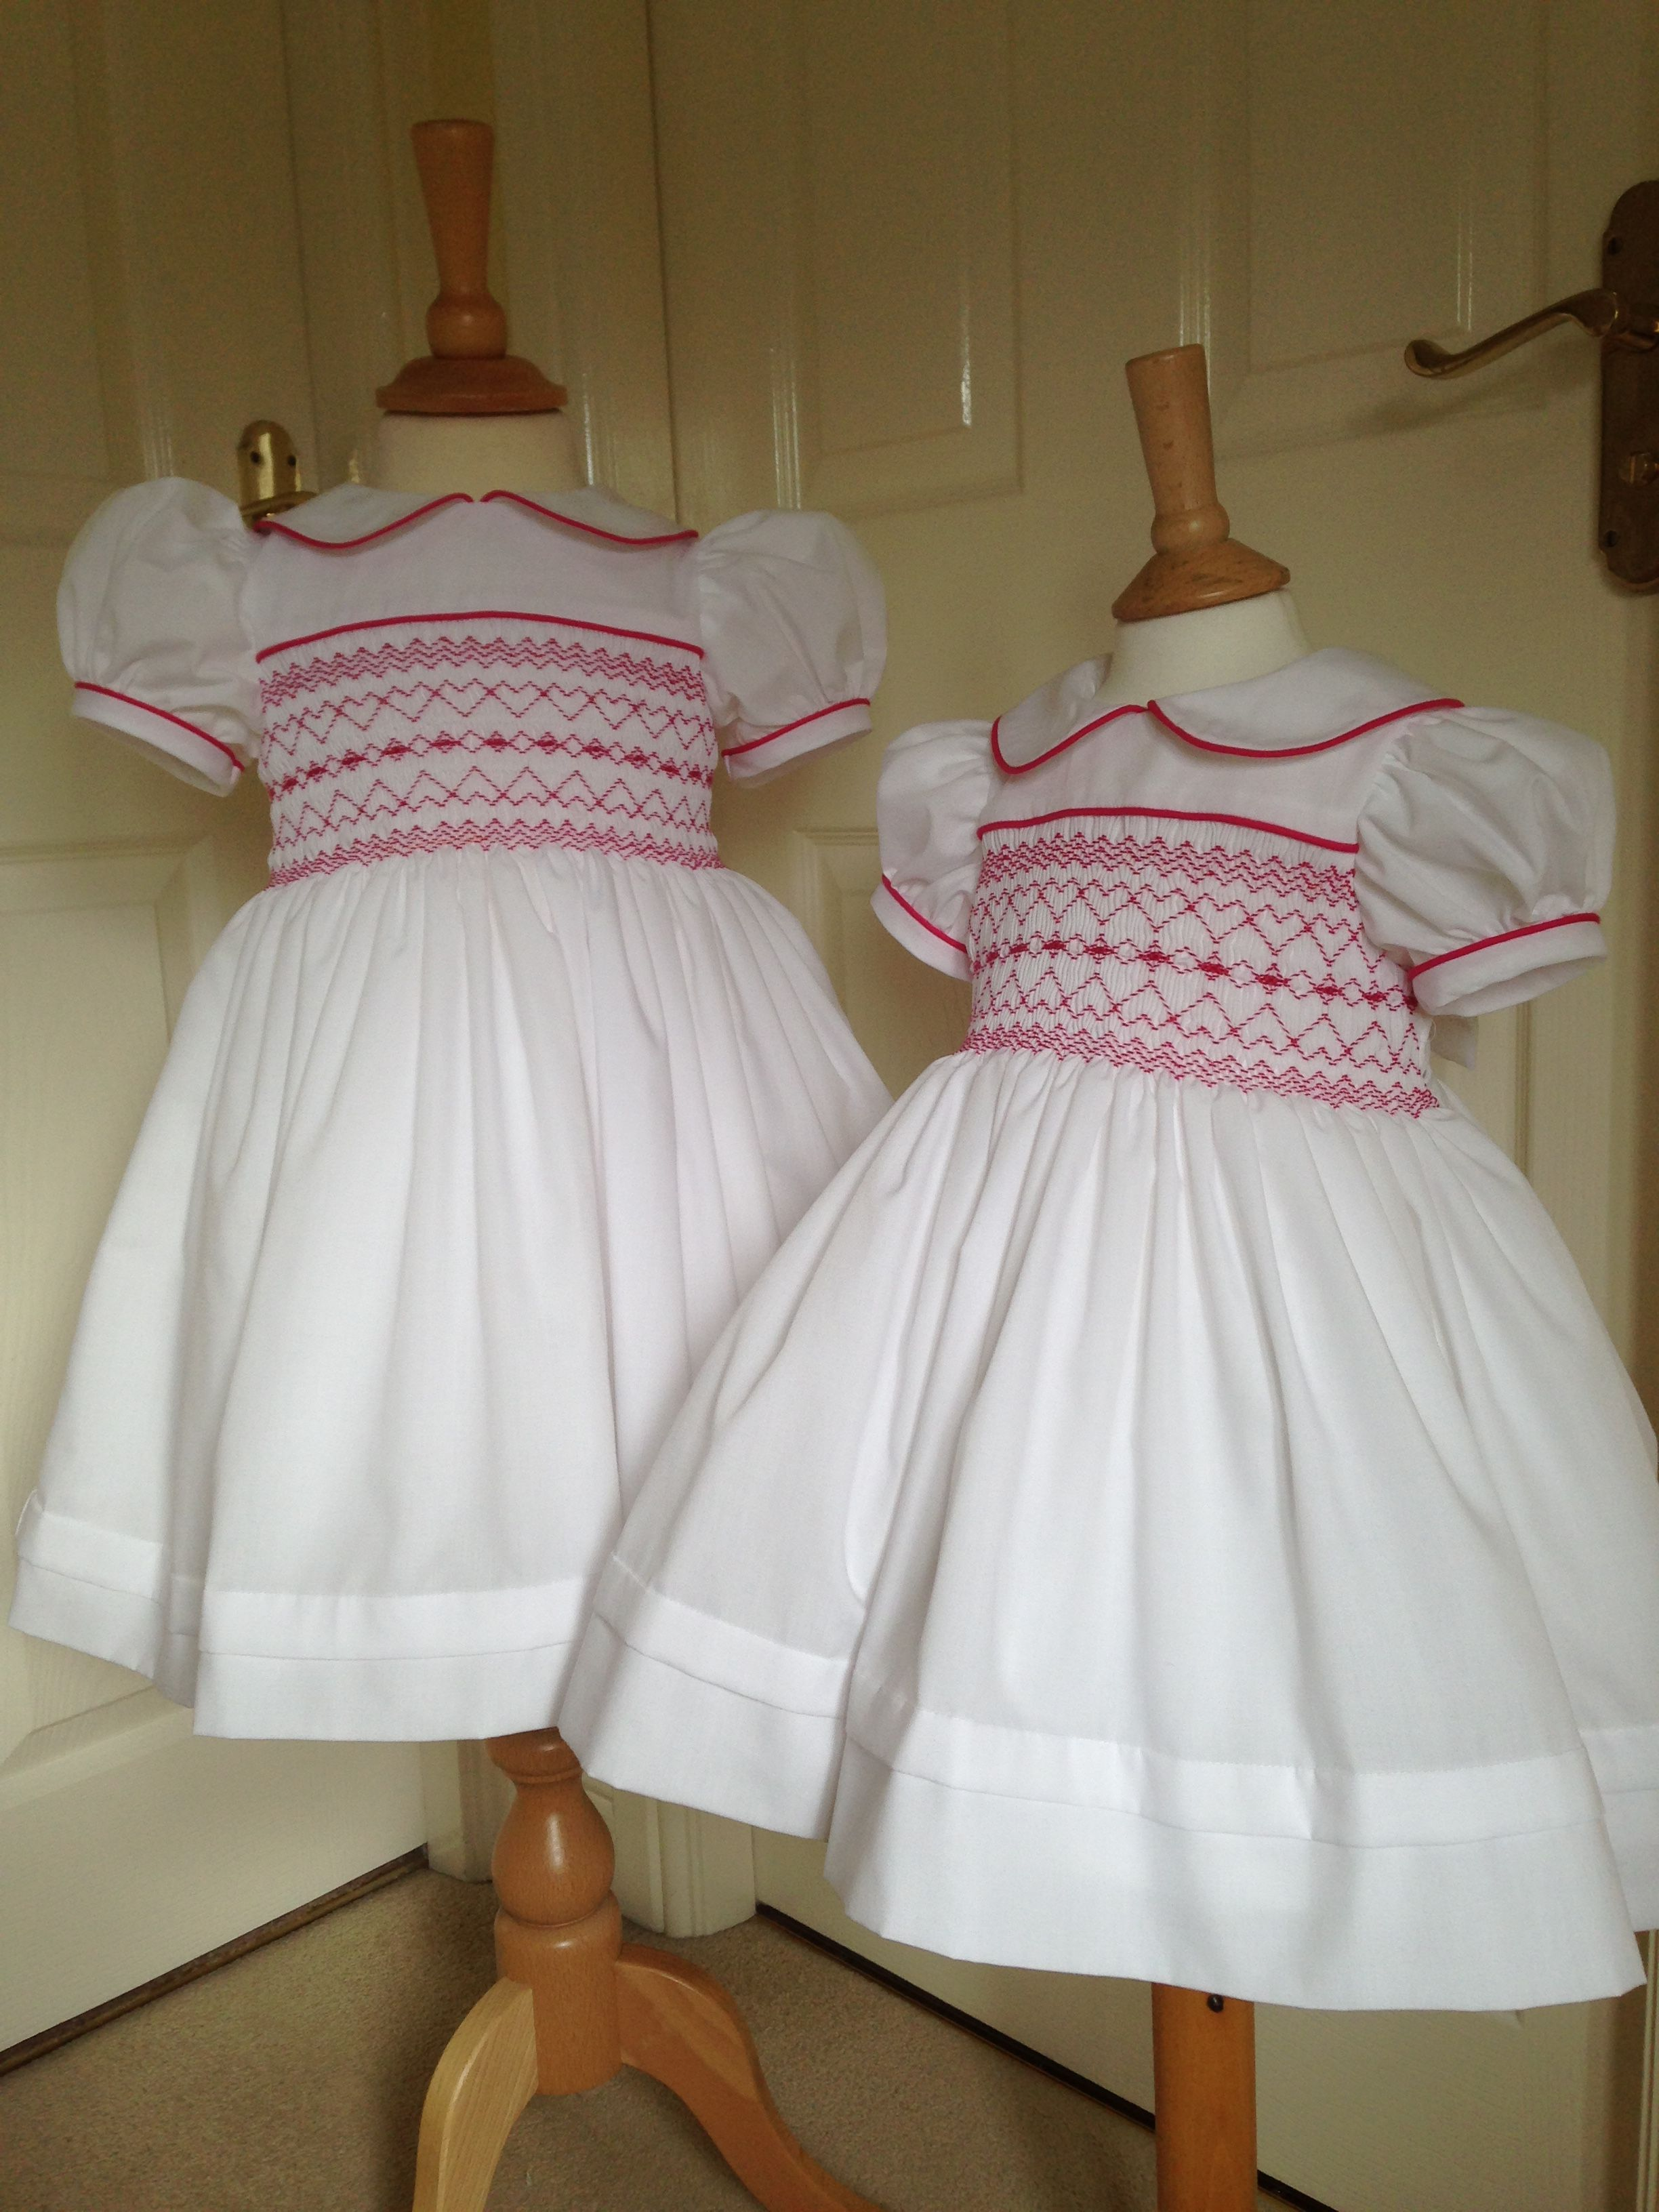 2854d2d9e4126 Two white and bright pink hand smocked dresses just completed ...